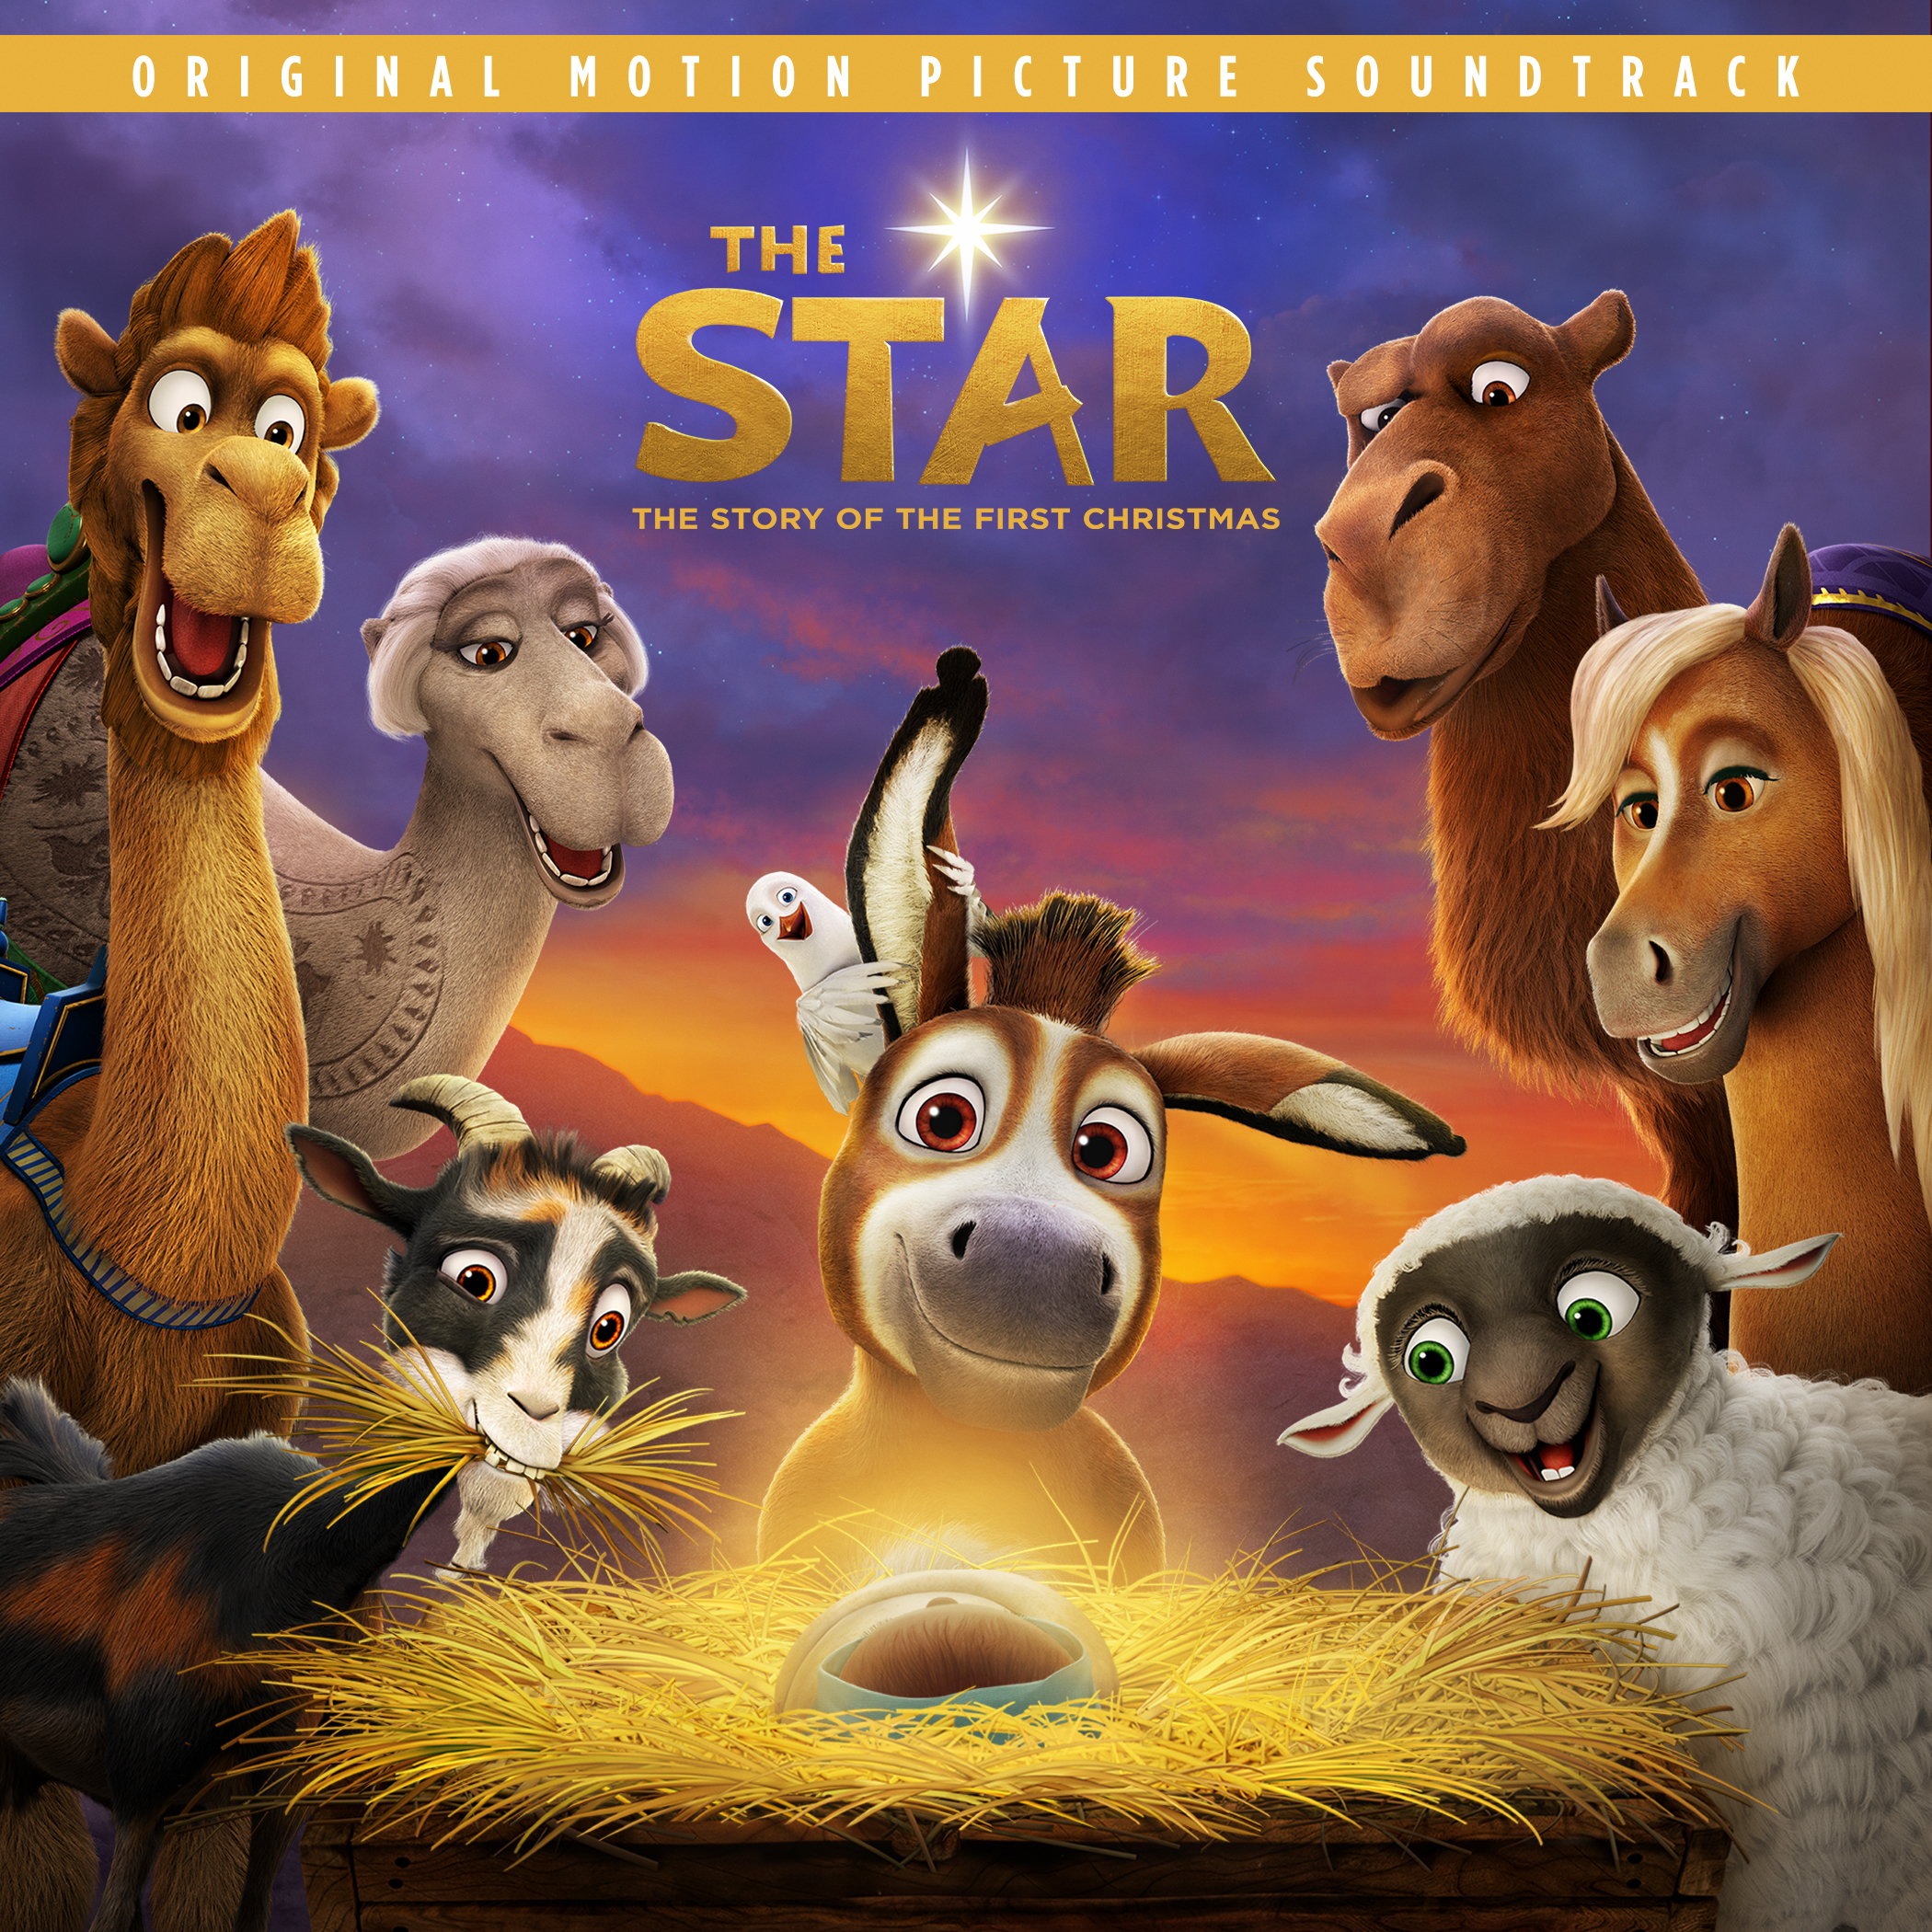 THESTAR_SOUNDTRACK_CVR_LYRD